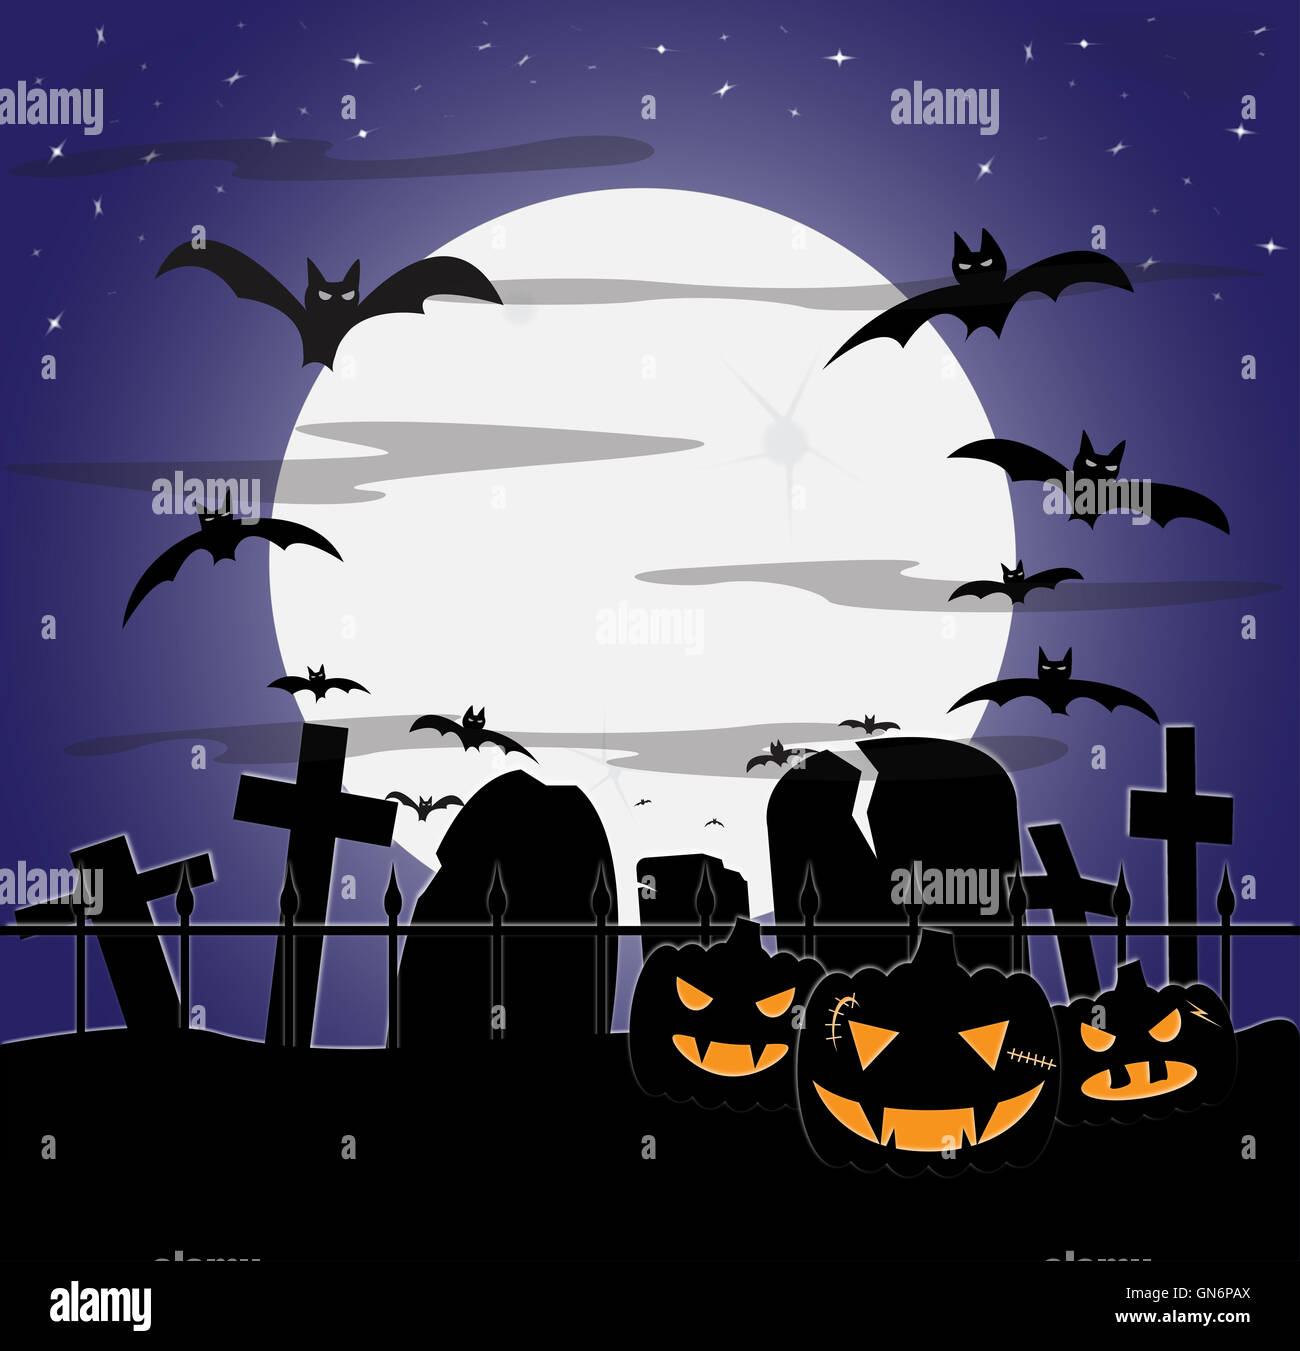 a cloudy halloween graveyard scene at night with bats and pumpkins